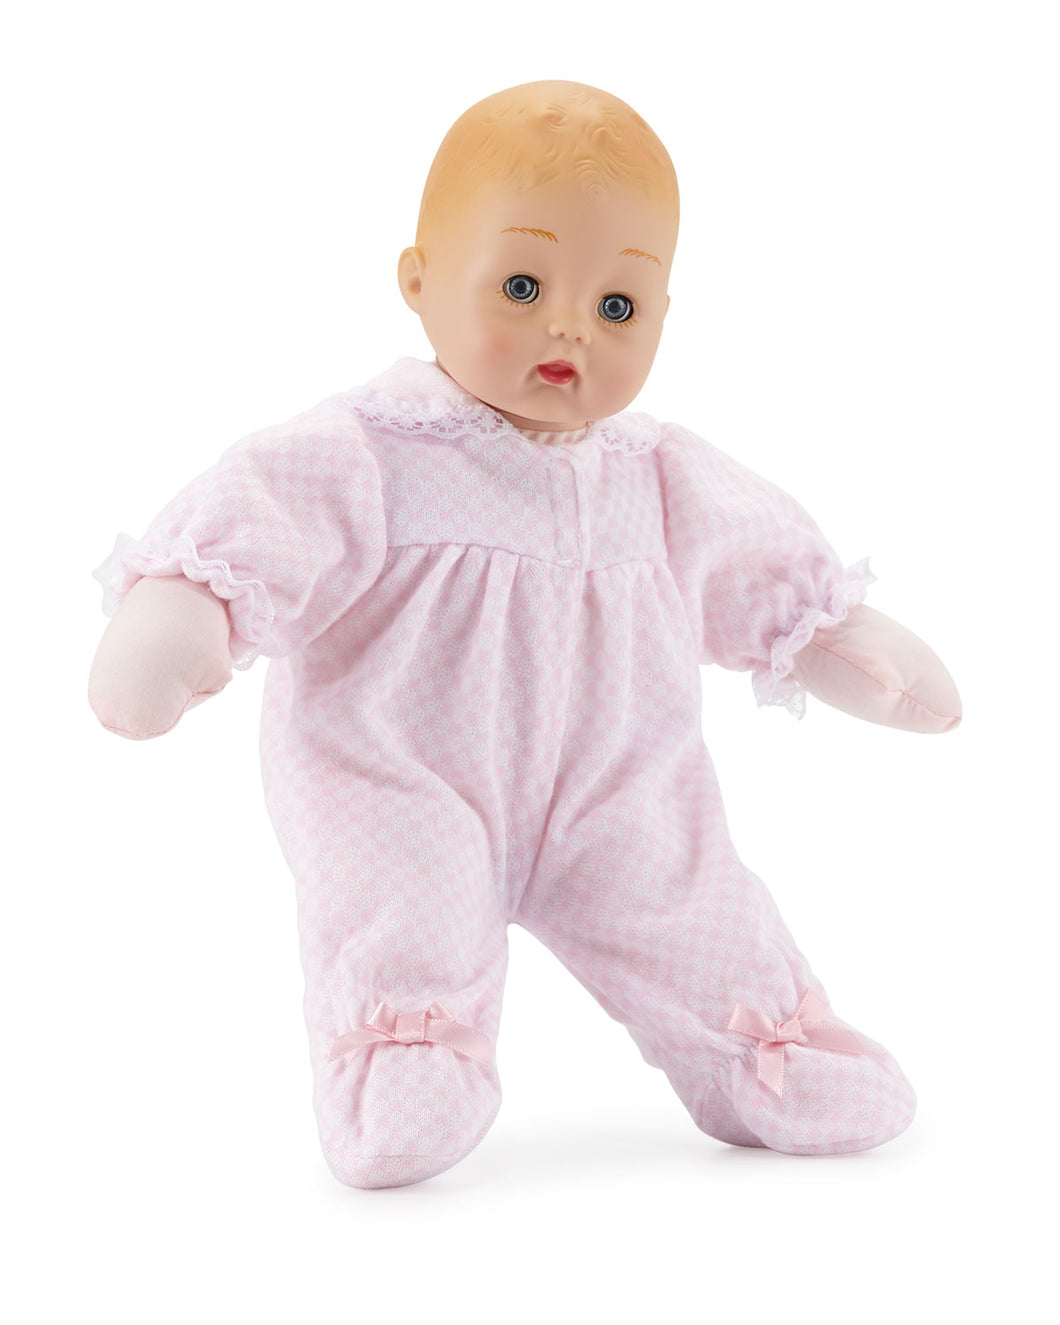 Baby Huggums My First Baby Doll